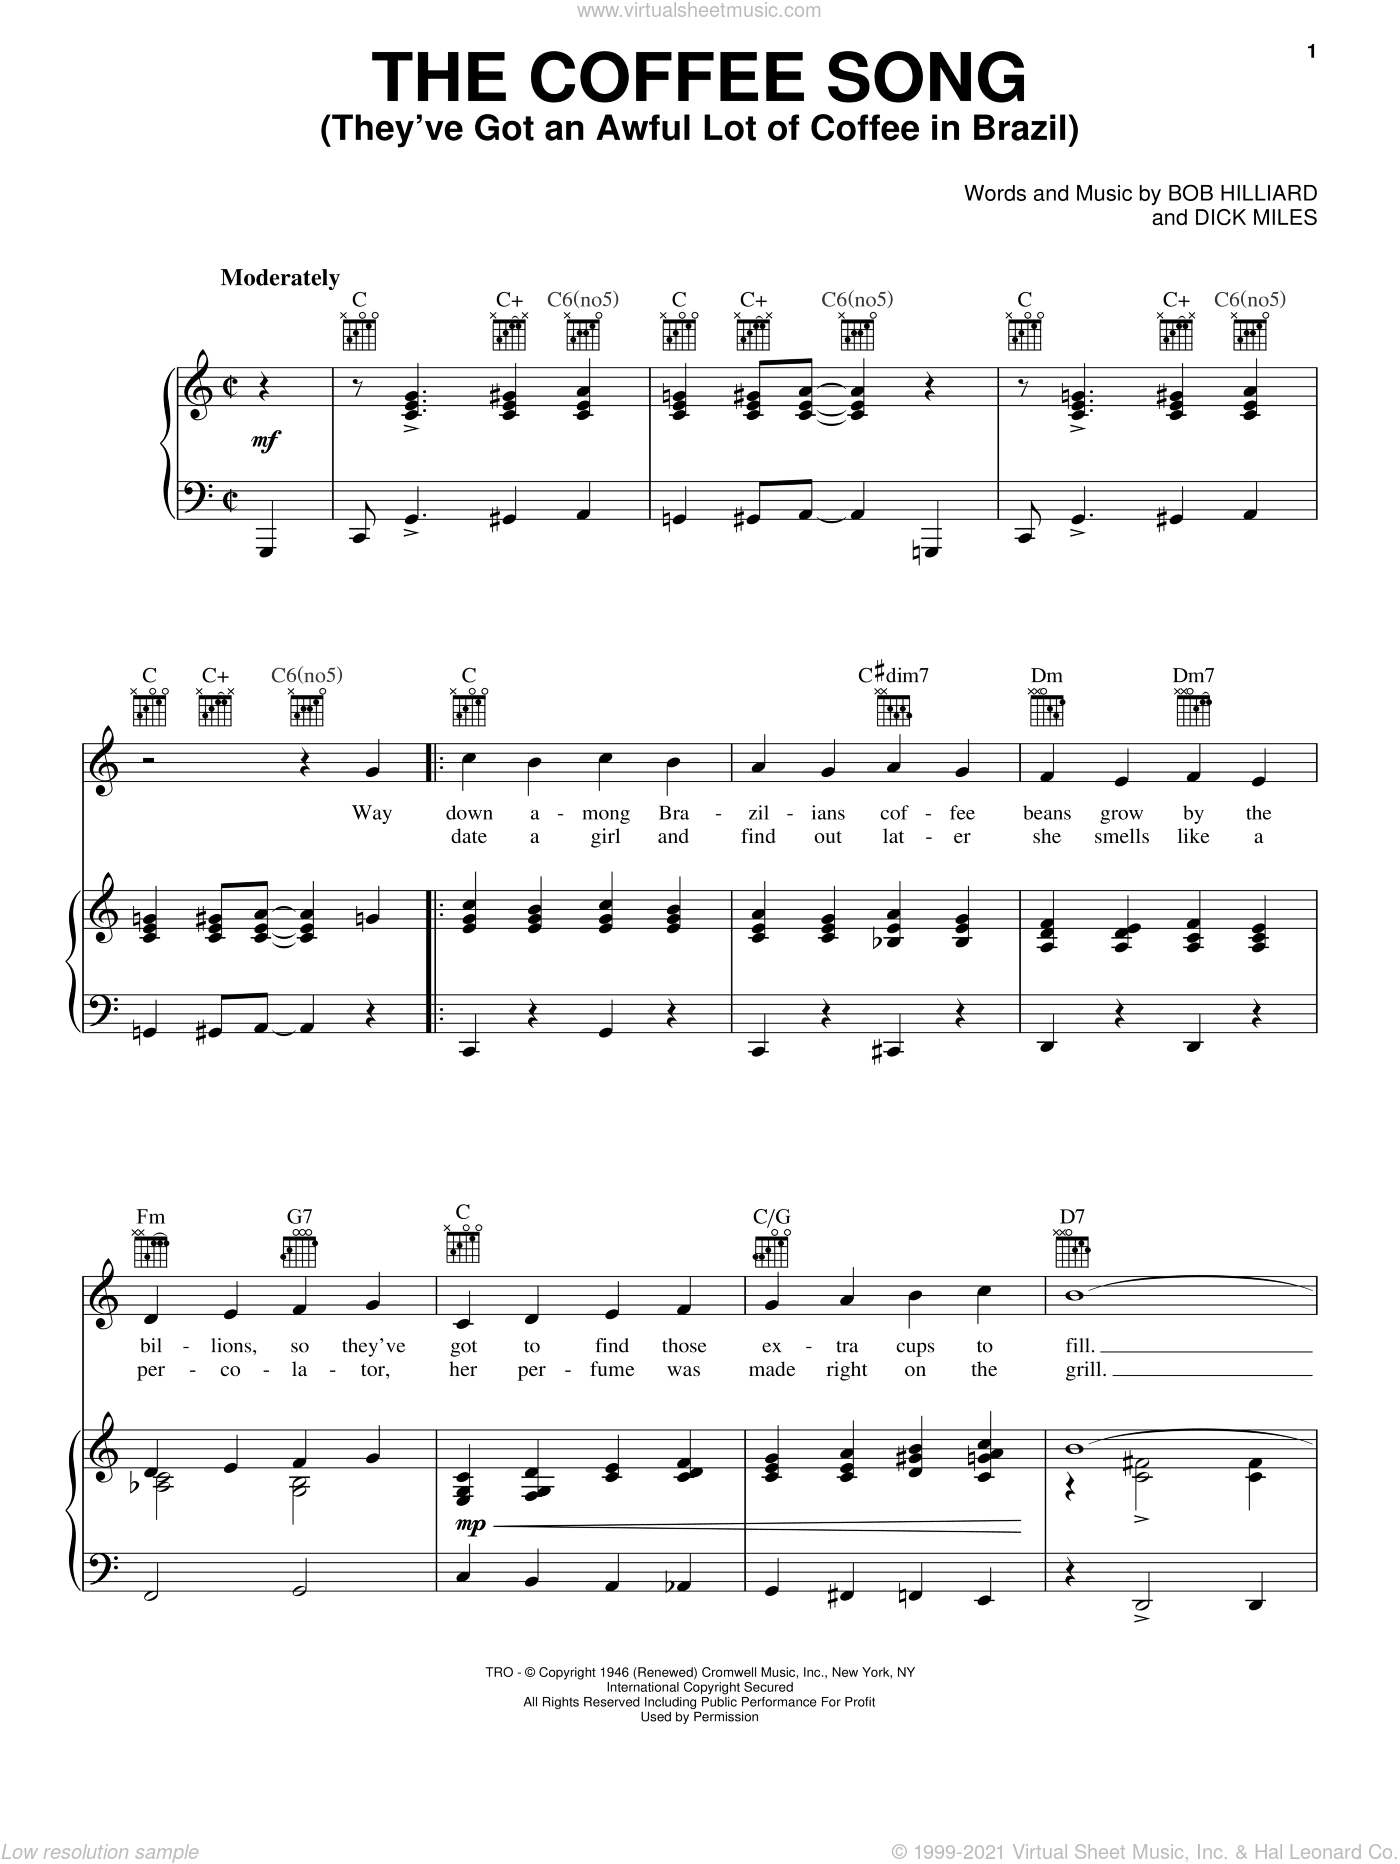 The Coffee Song (They've Got An Awful Lot Of Coffee In Brazil) sheet music for voice, piano or guitar by Dick Miles